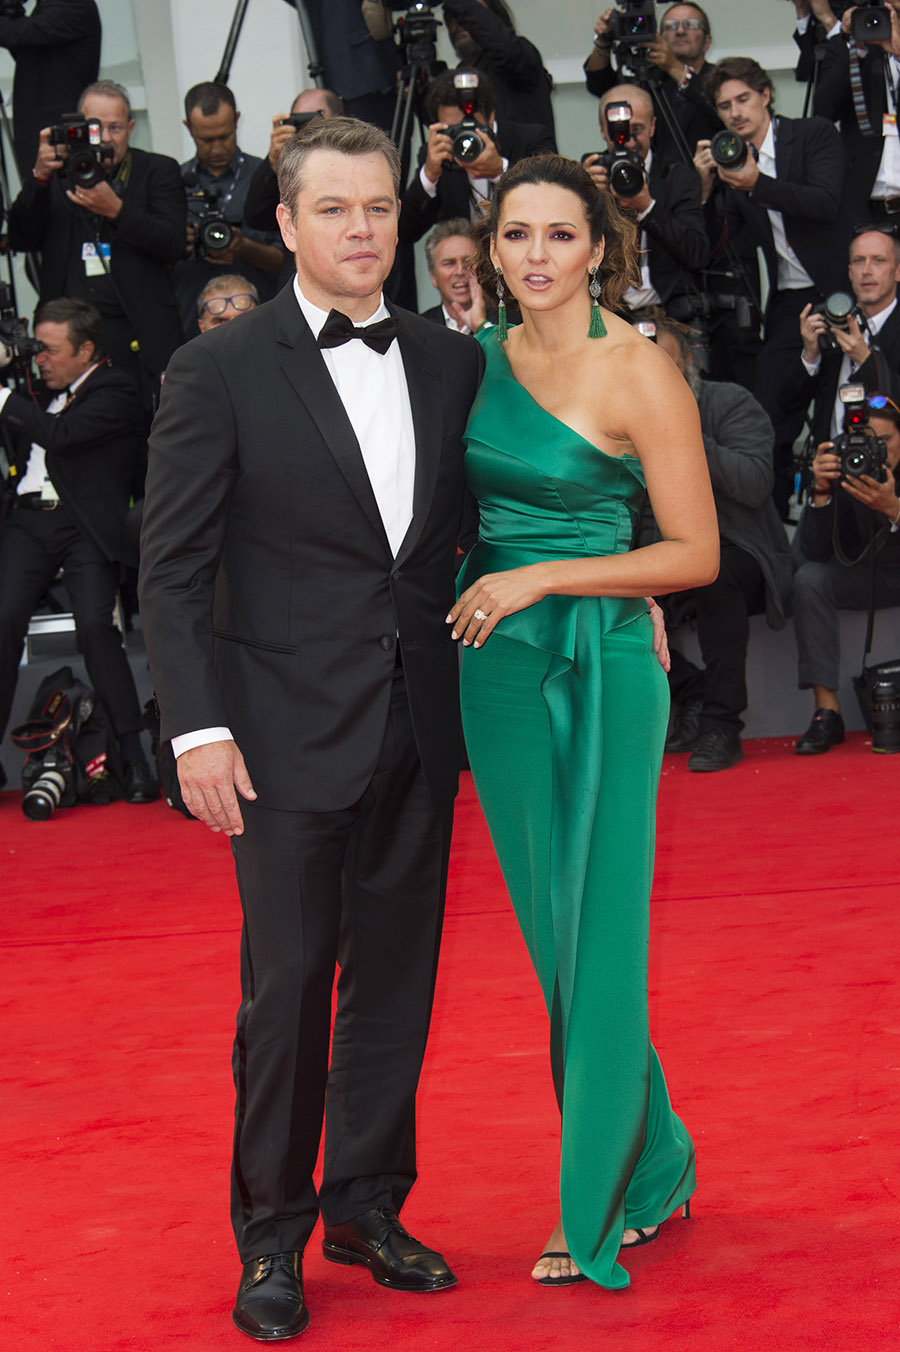 DL u382965 059. Matt Damon y Luciana Barroso